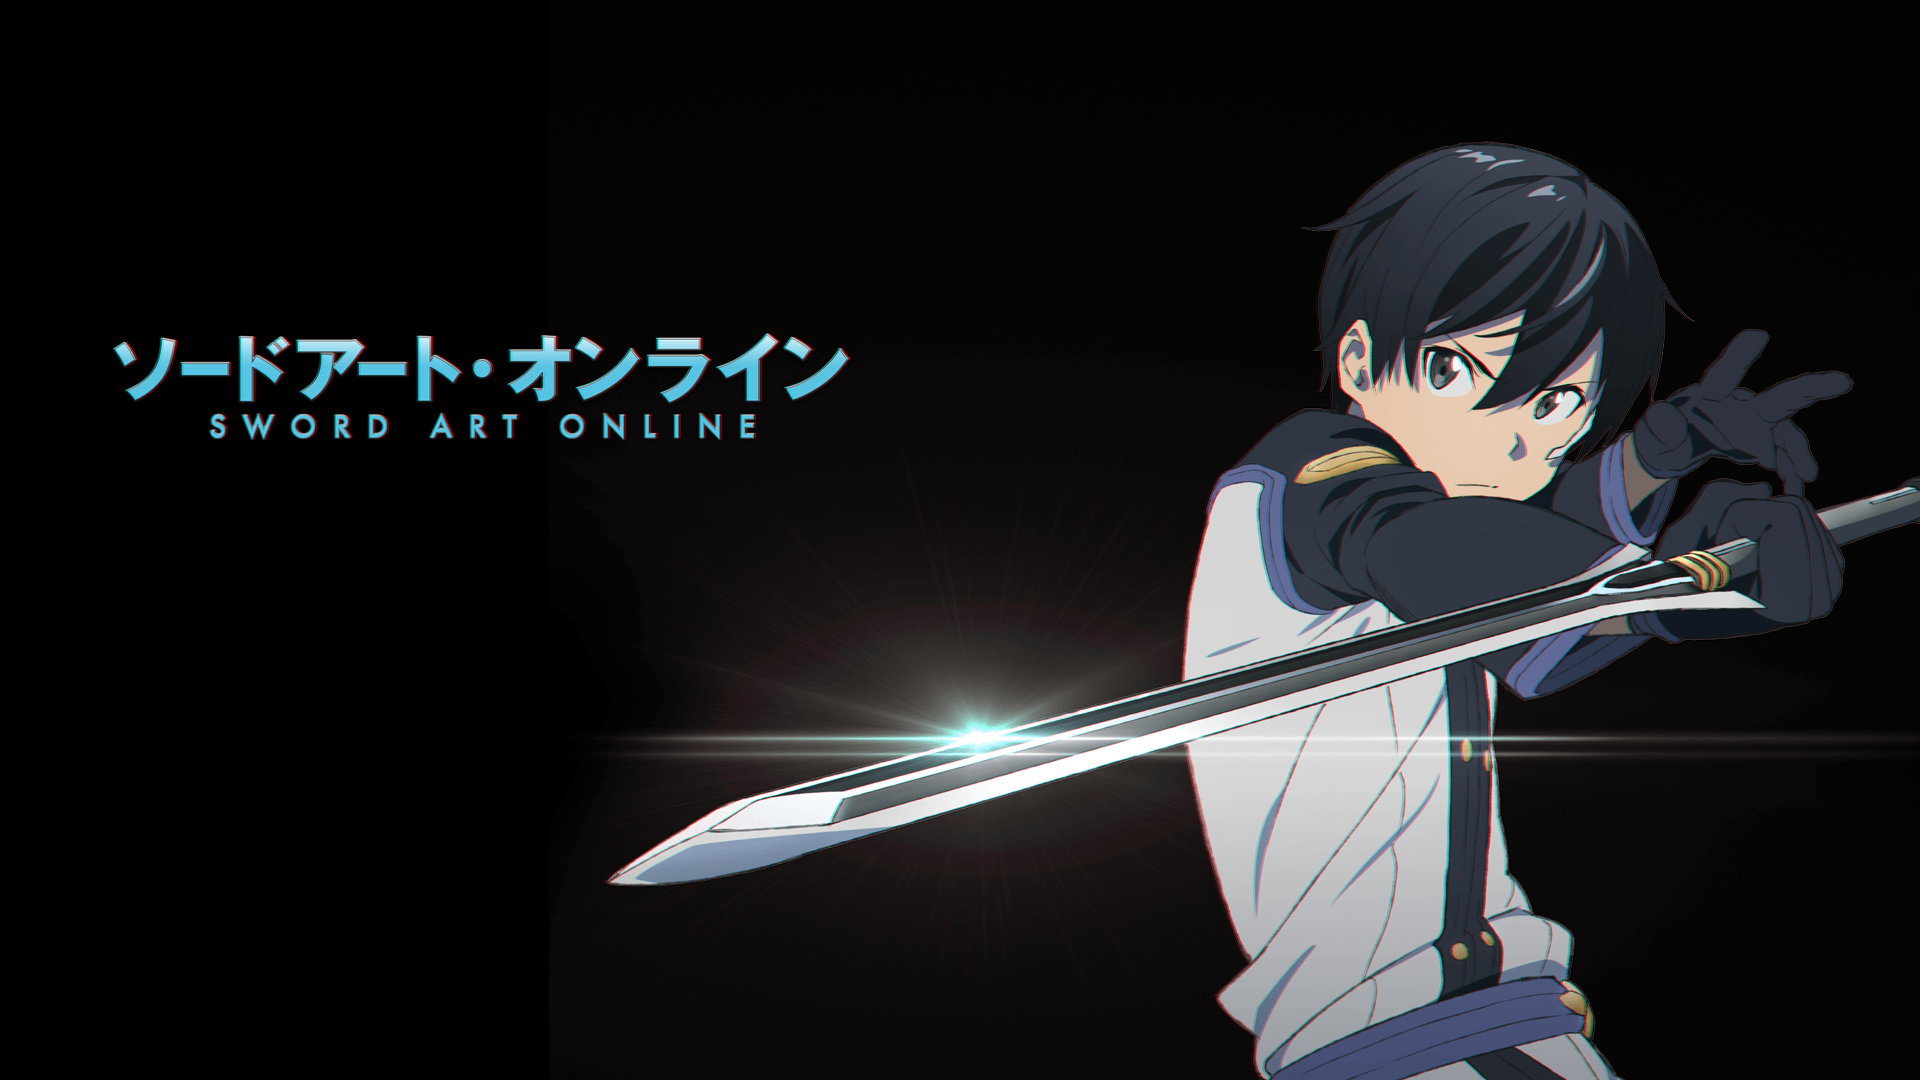 705 kazuto kirigaya hd wallpapers | background images - wallpaper abyss